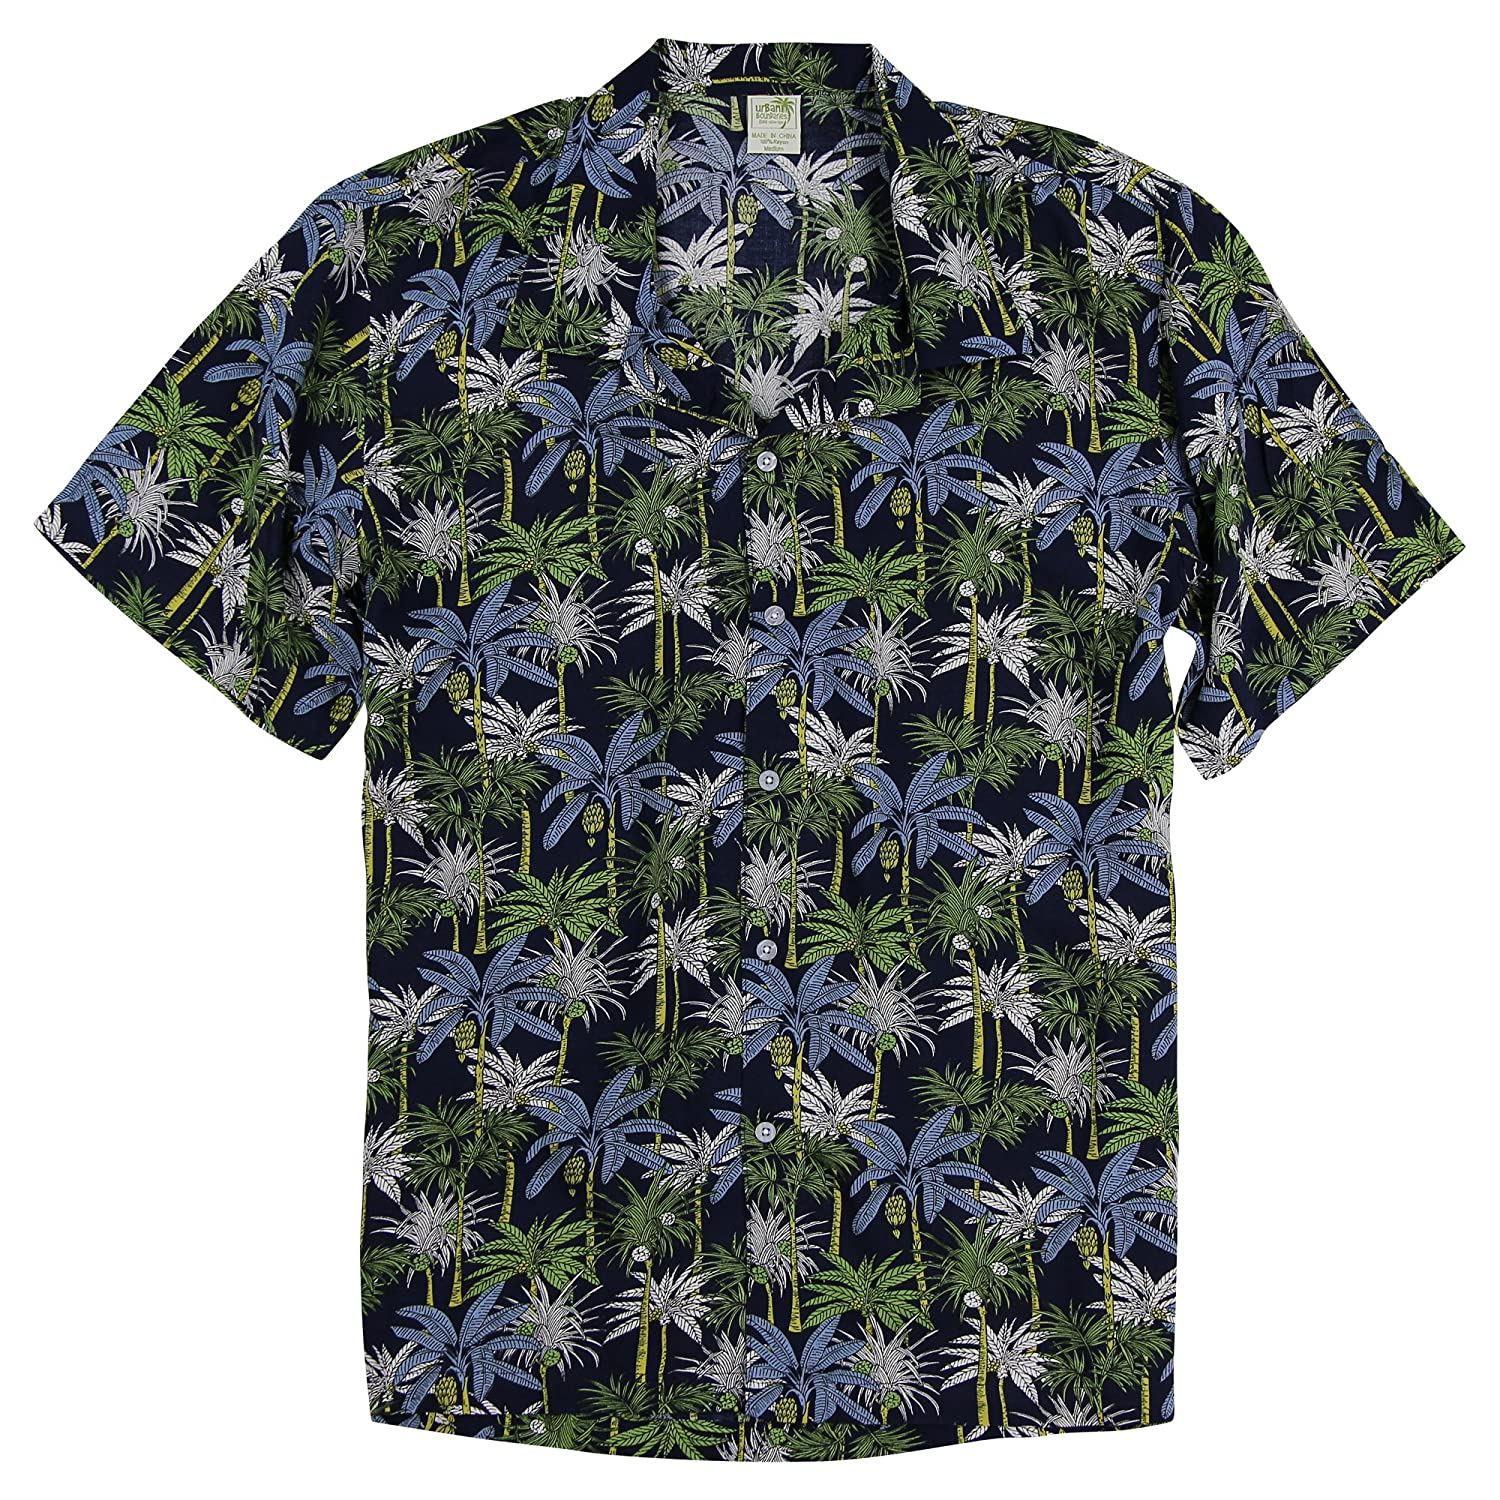 Men's Short Sleeve Rayon Hawaiian Tropical Patterns Shirts